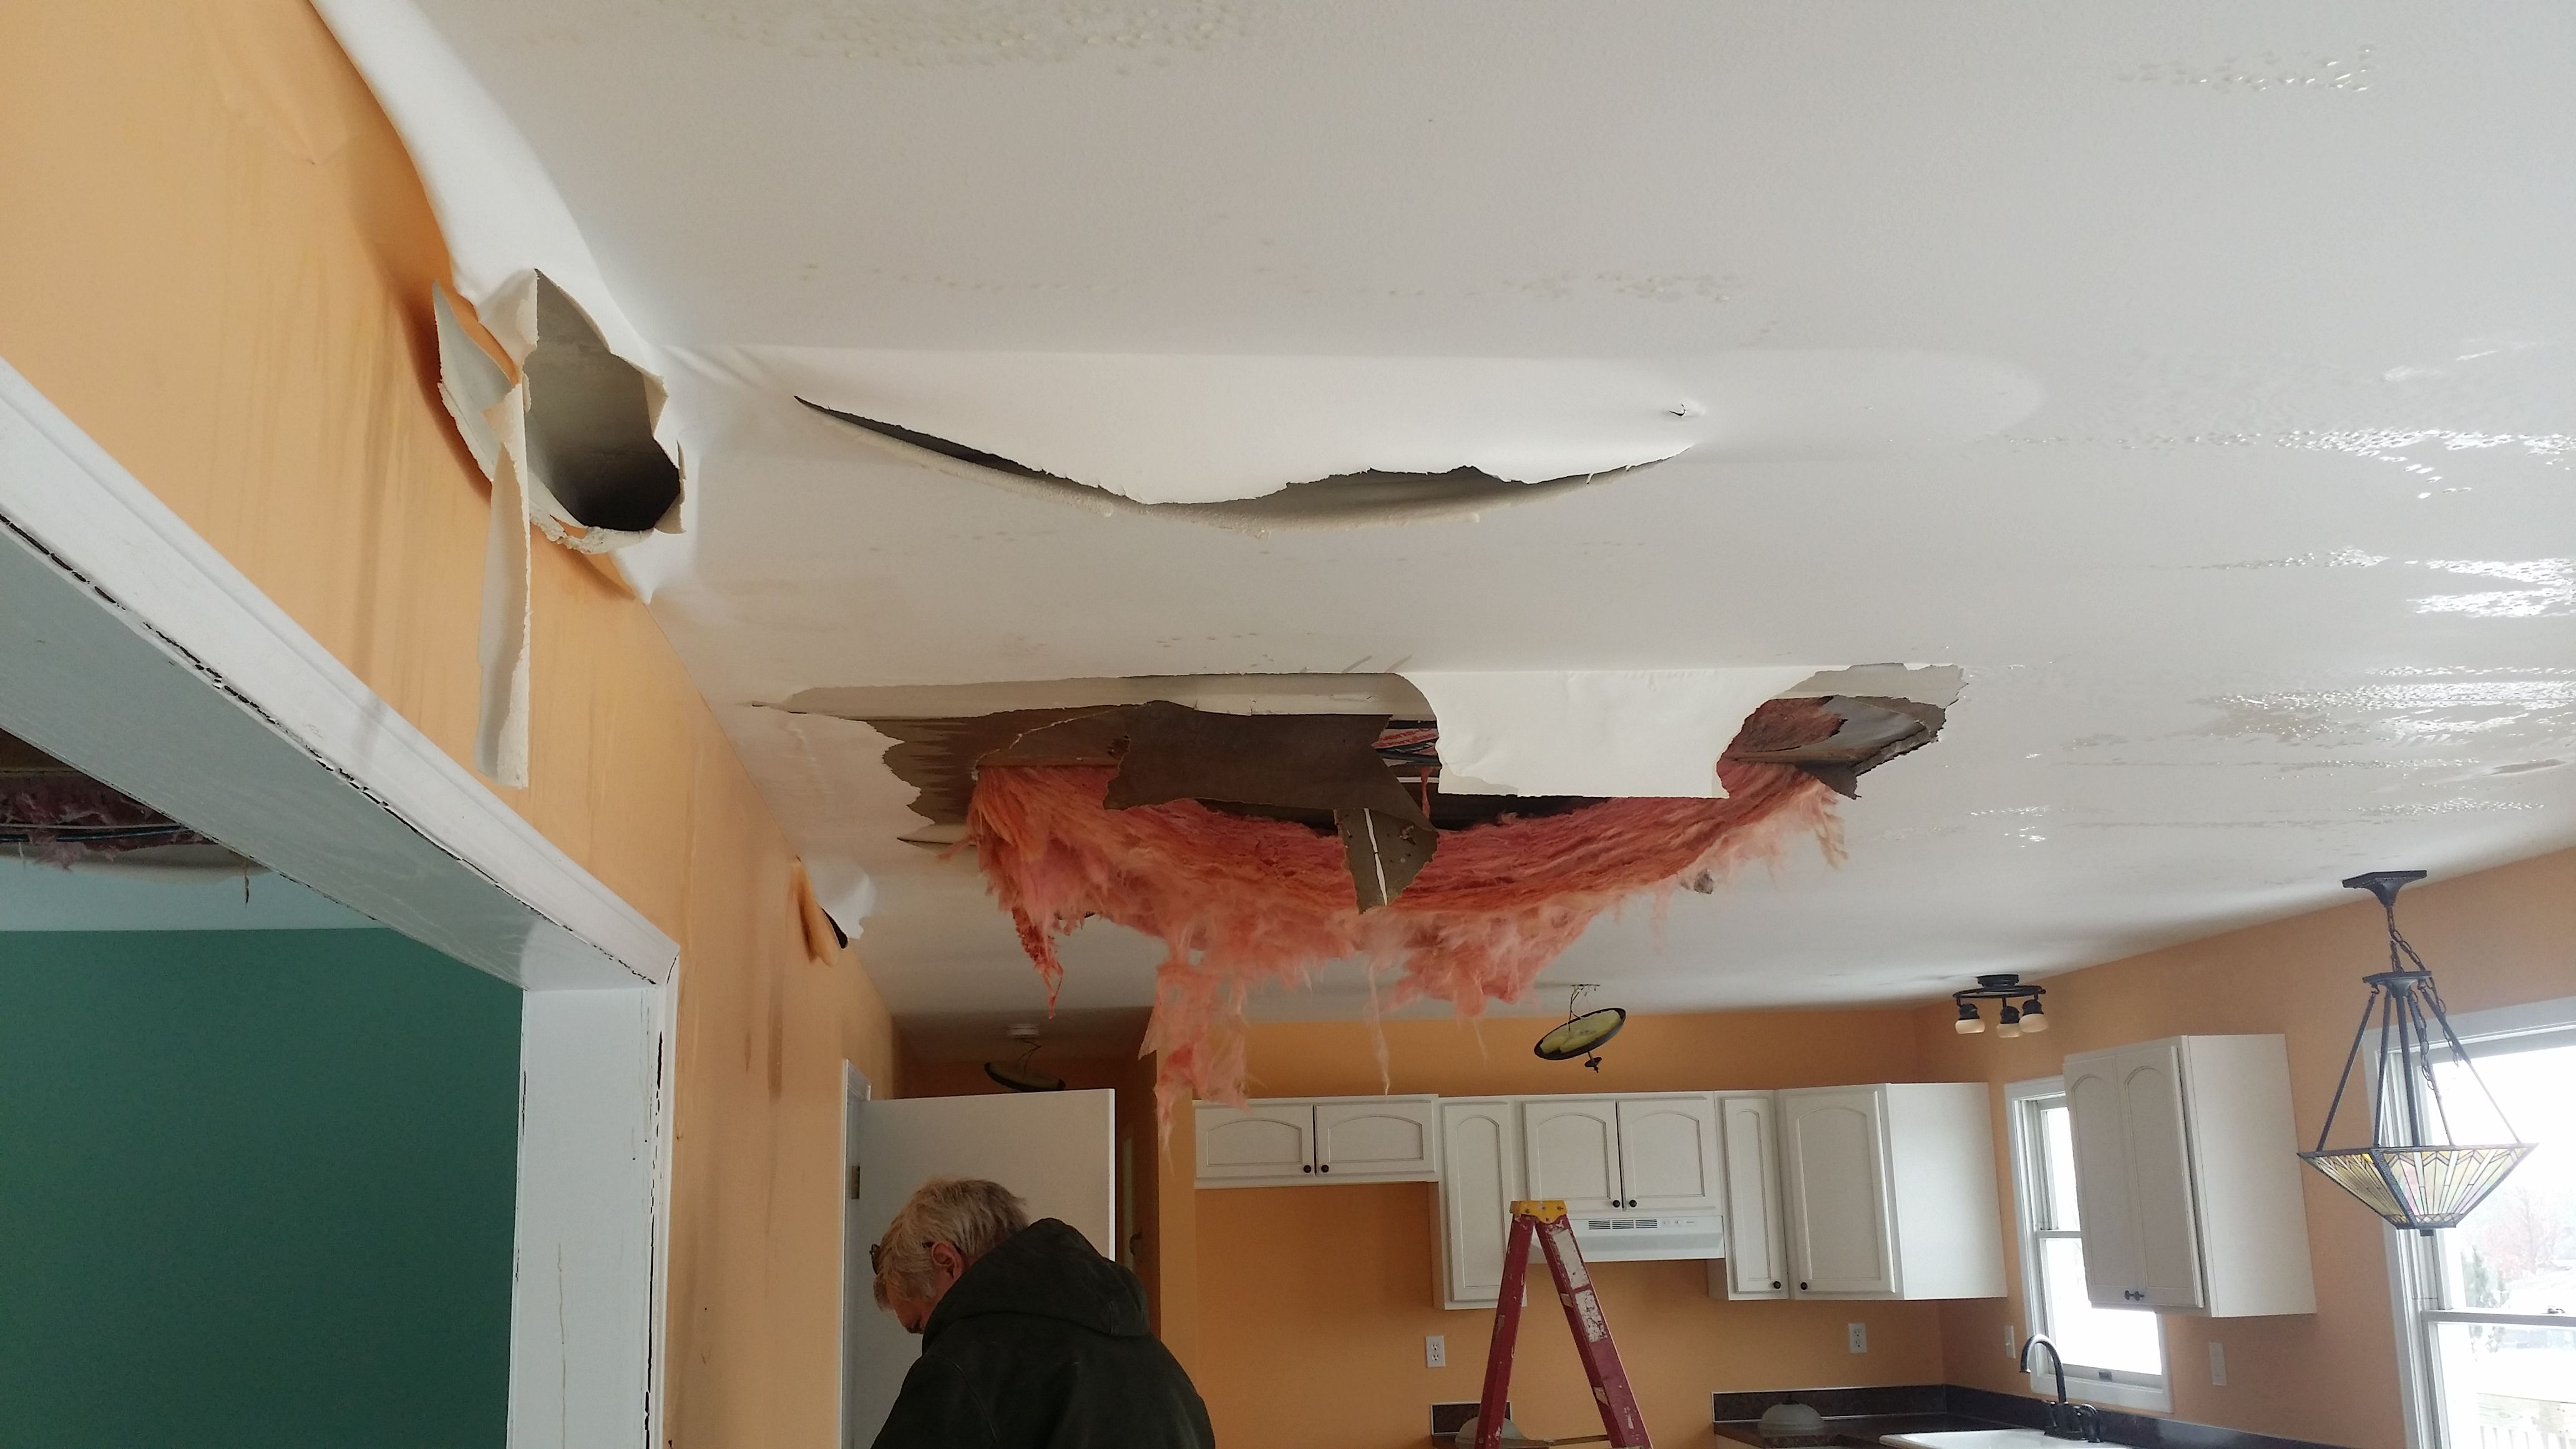 This Is What Happens When You Have A Bad Roof Leak Leaking Roof Ceiling Lights Home Decor